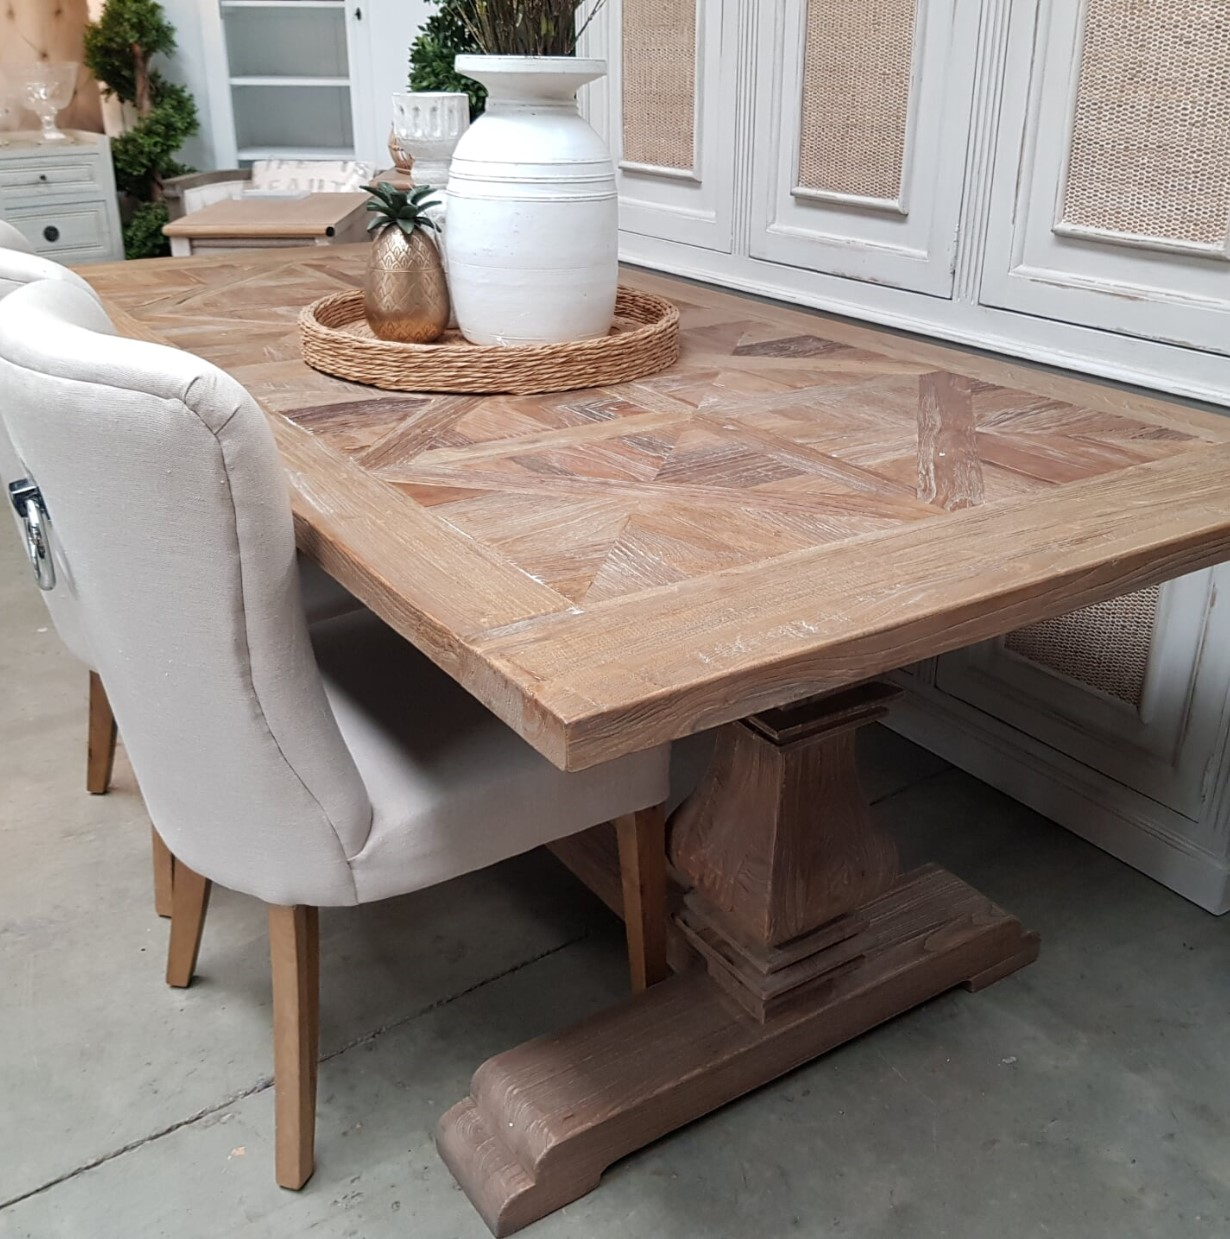 *Artisan Rustic Parquetry Top Dining Table - 2 SIZES - IN STOCK